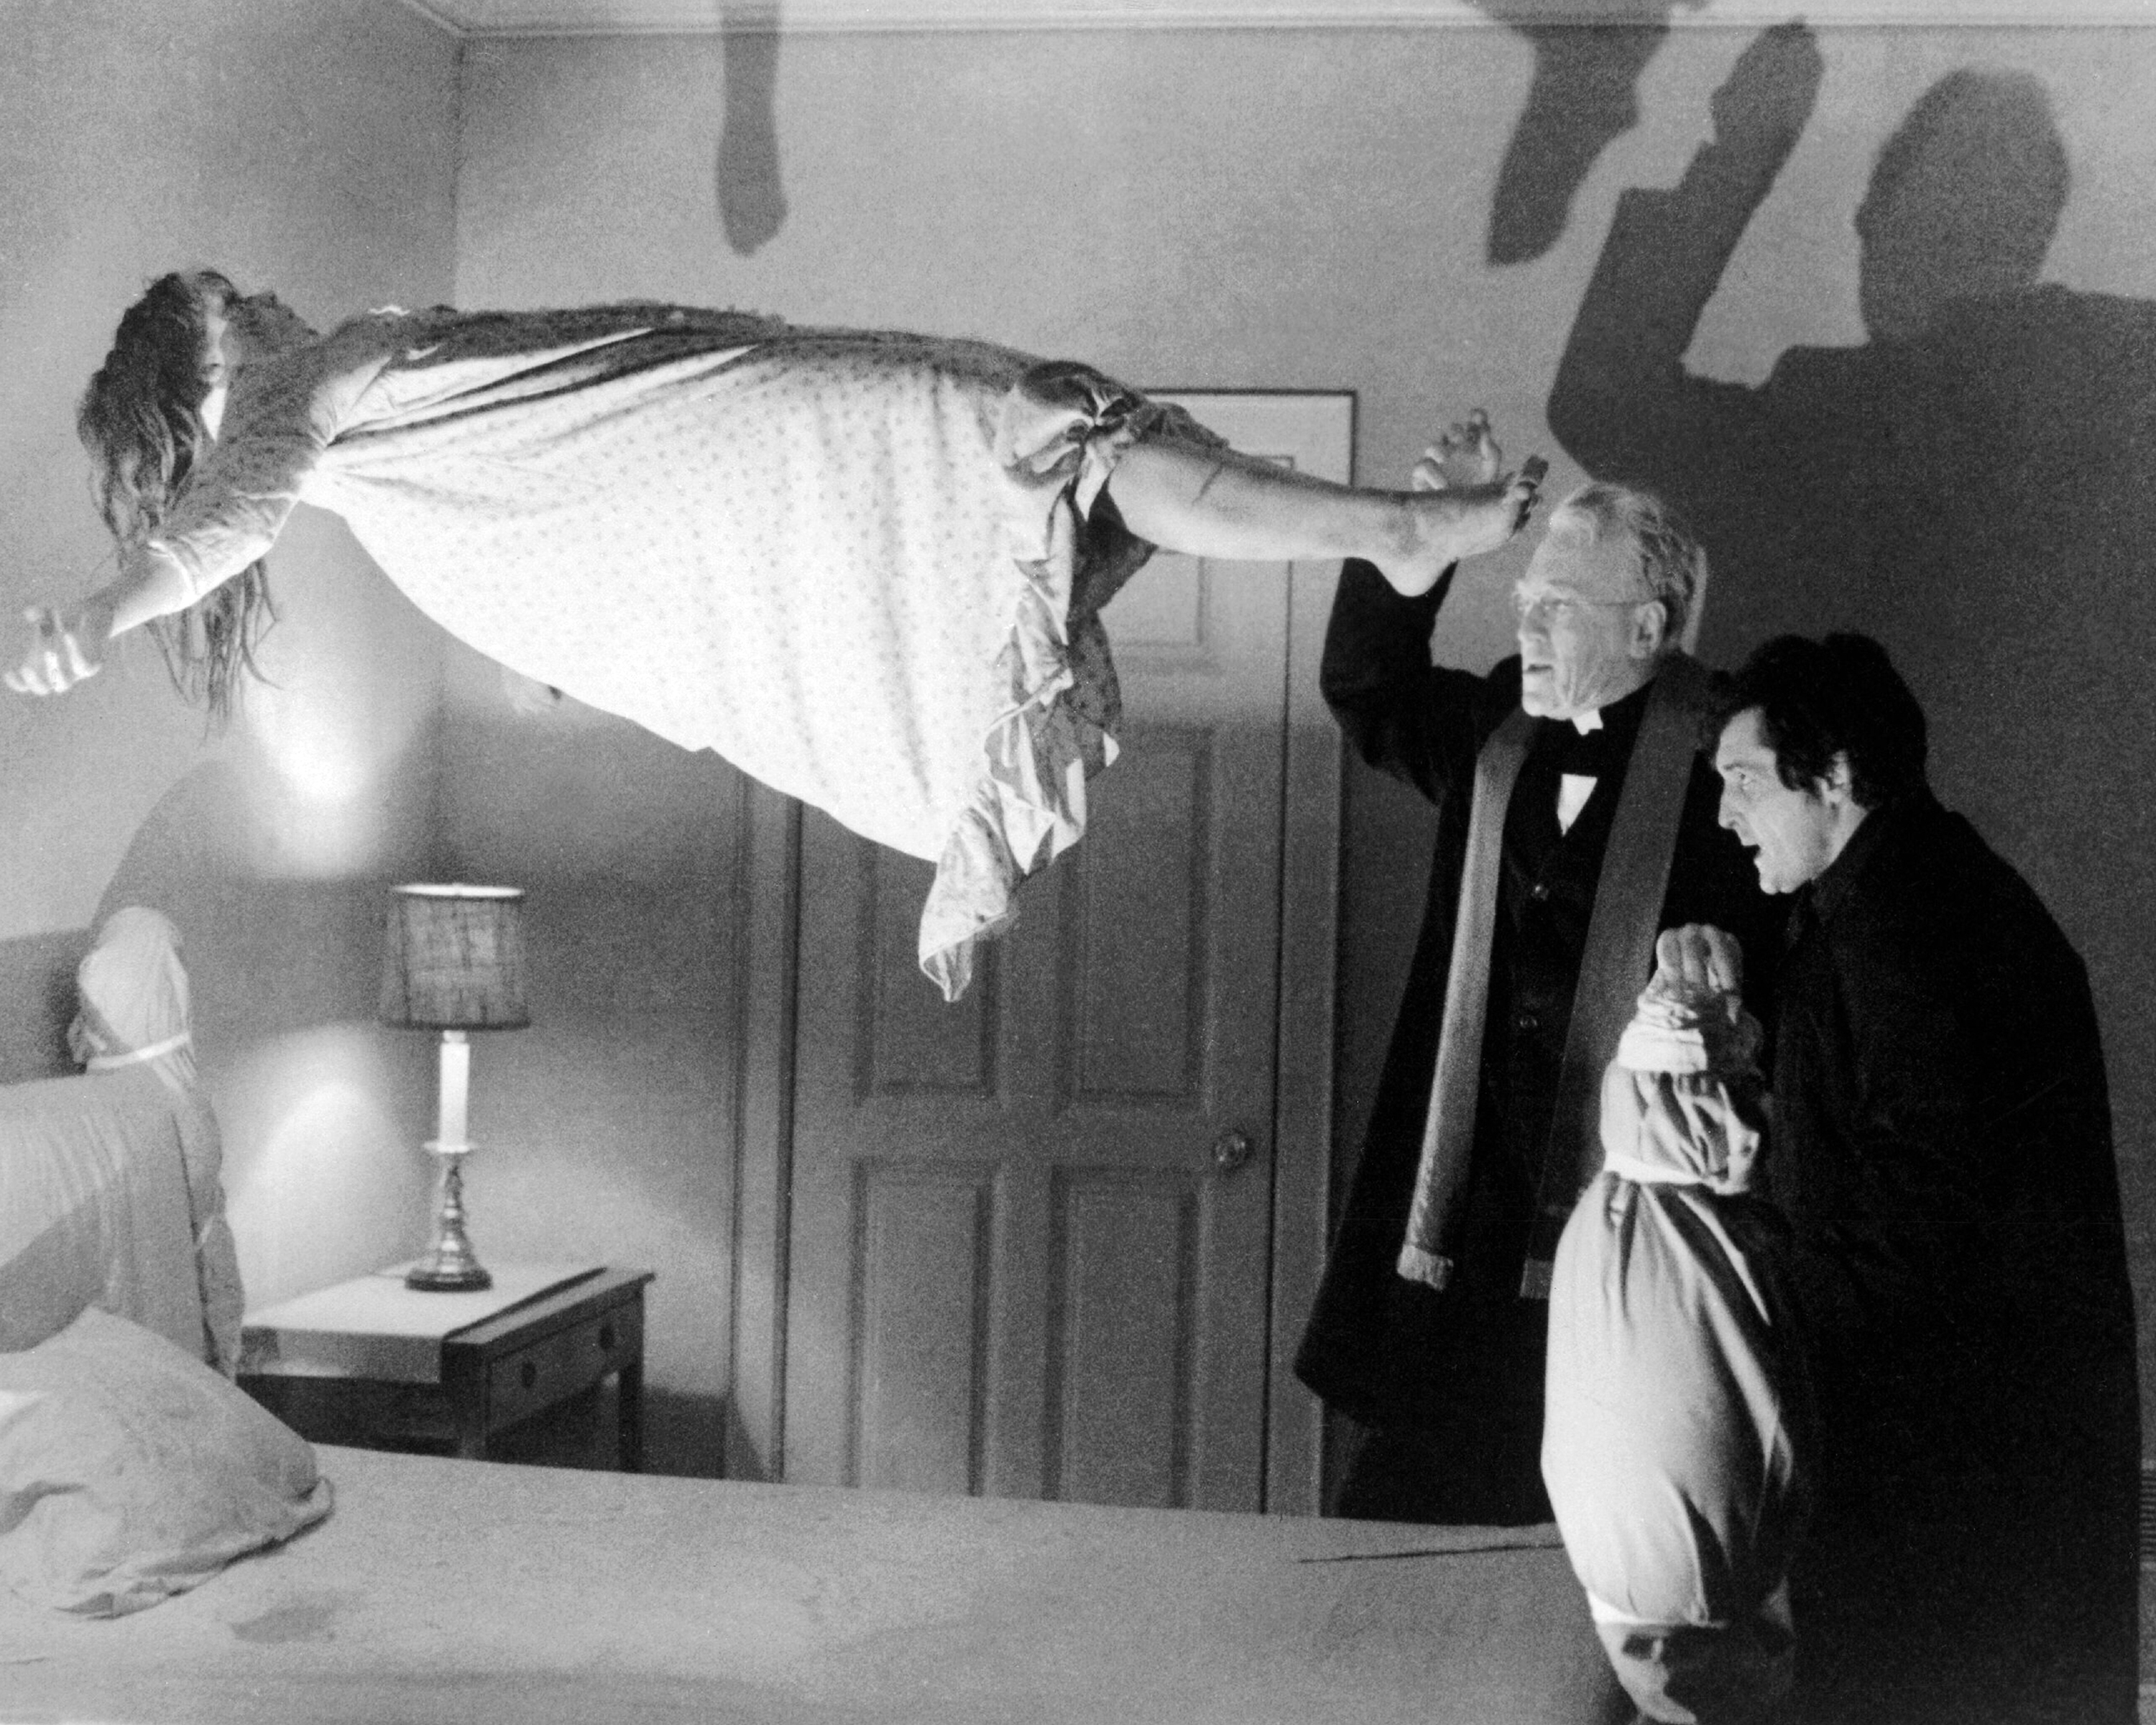 A scene from 'The Exorcist'